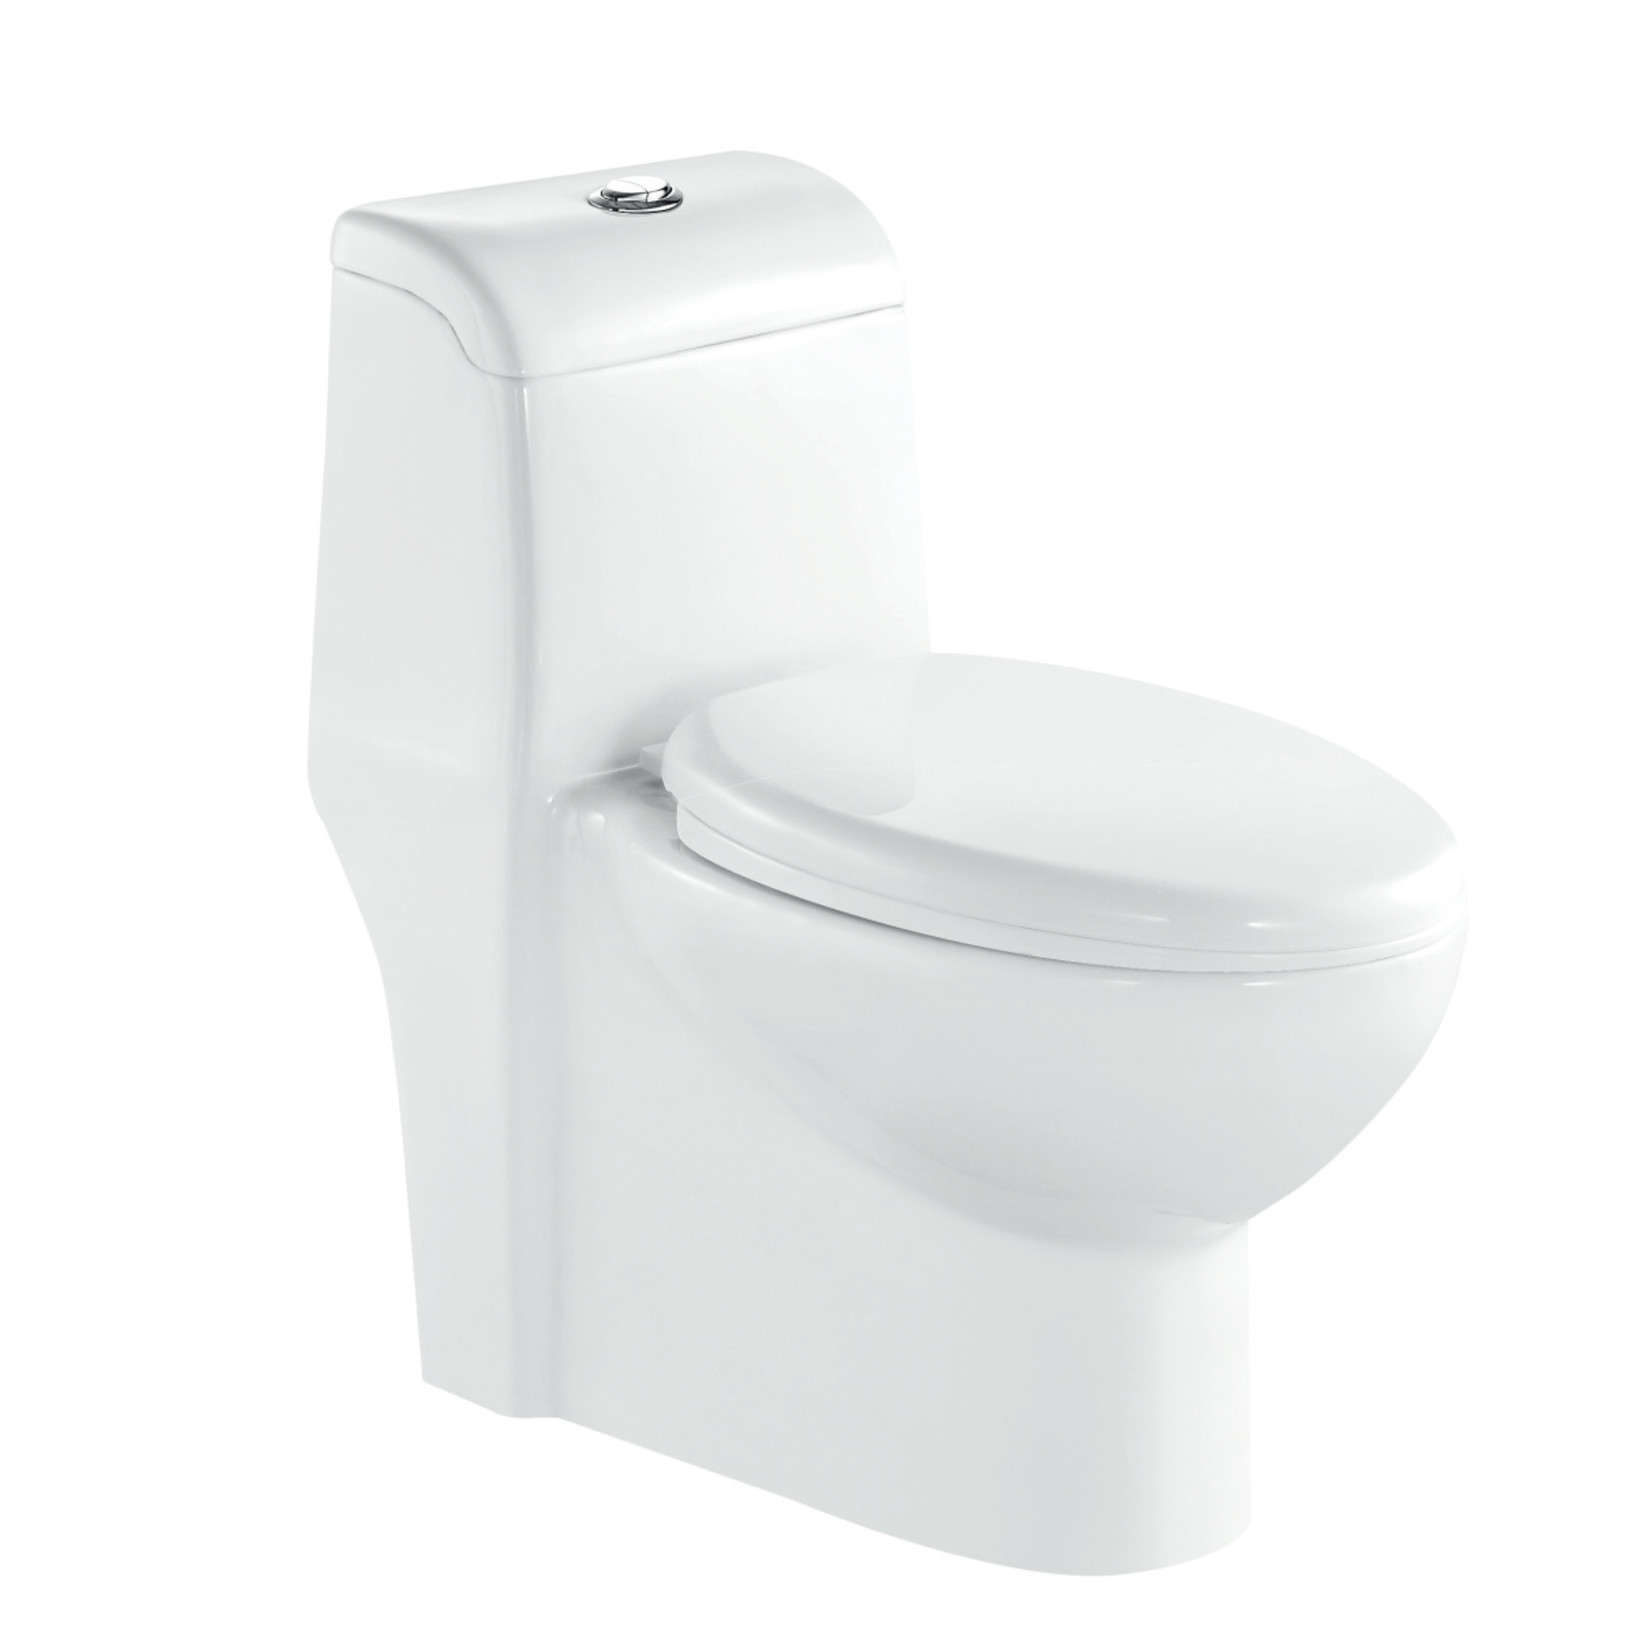 Toilette ossom MJ-310